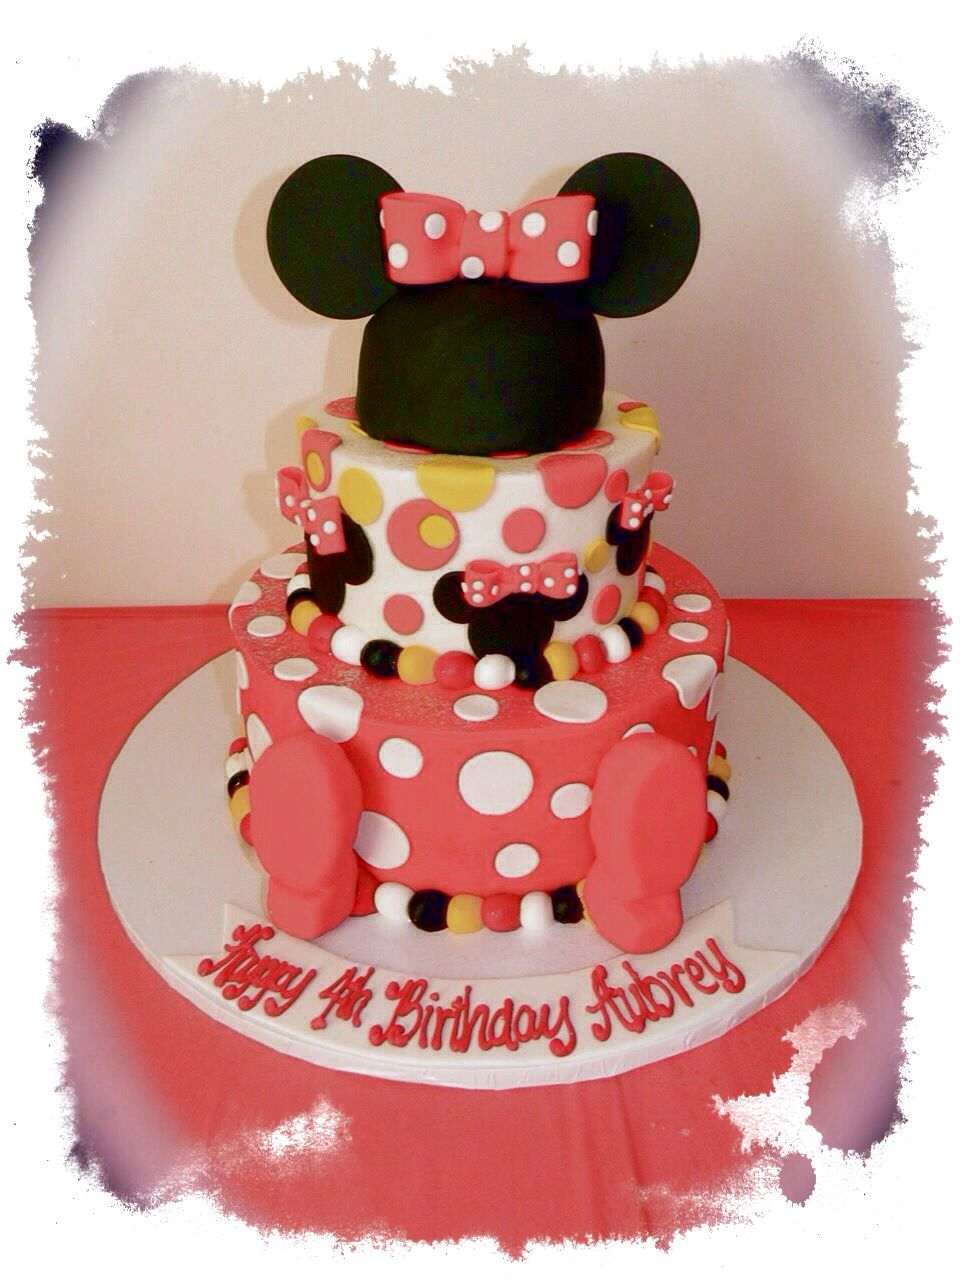 Minnie Mouse birthday cake made by Michael Angelo's bakery in Broadview Hts